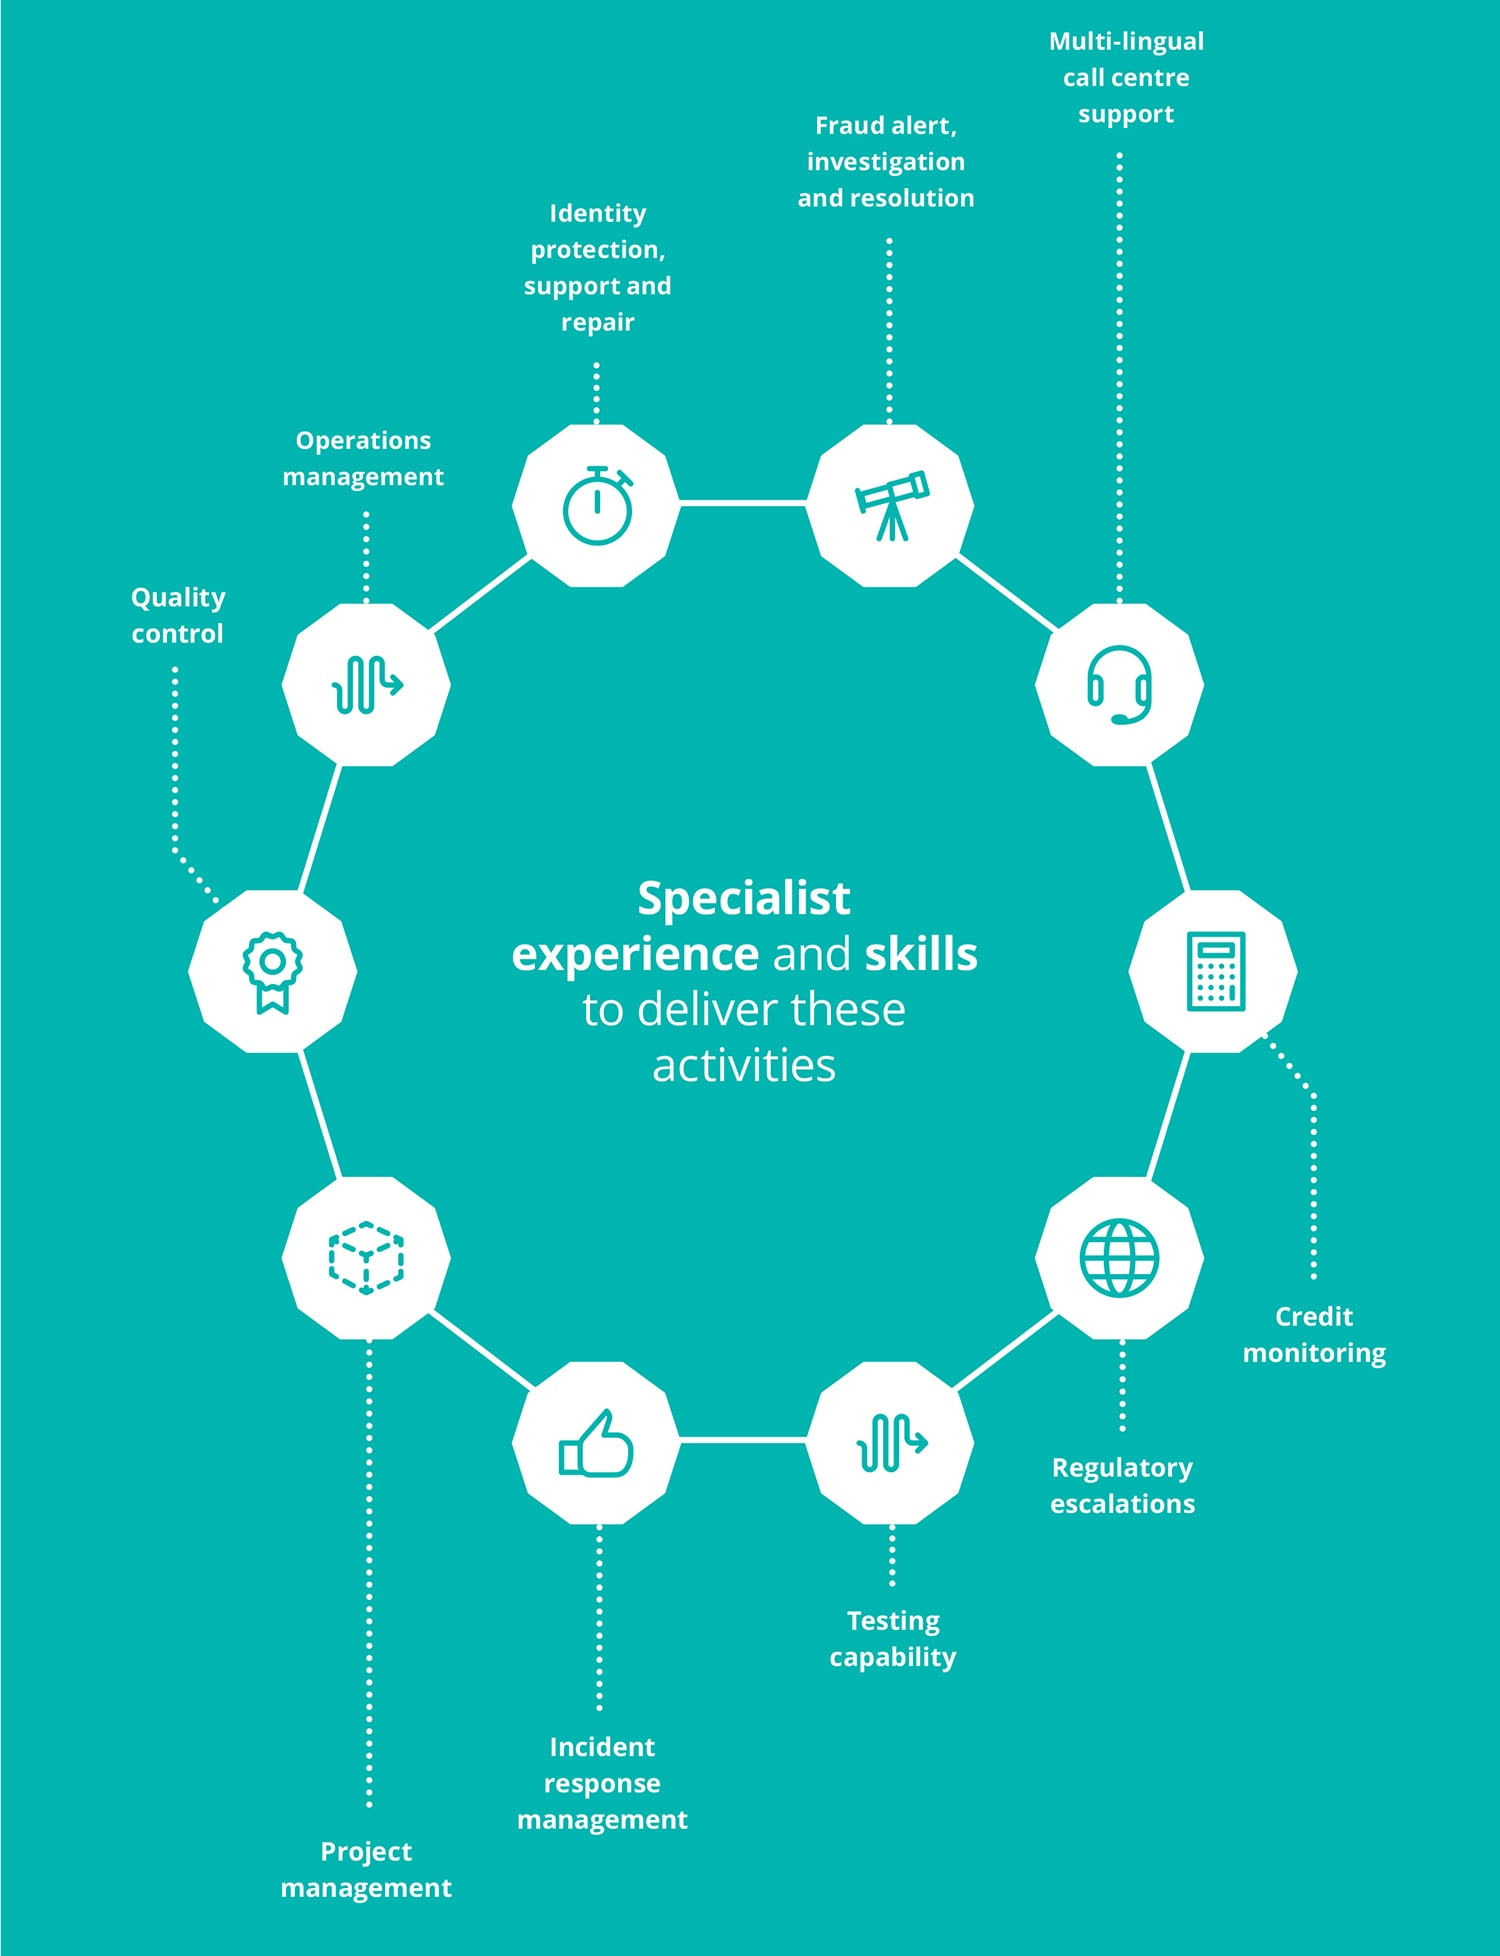 deloitte-uk-specialist-experience-and-skills.jpg